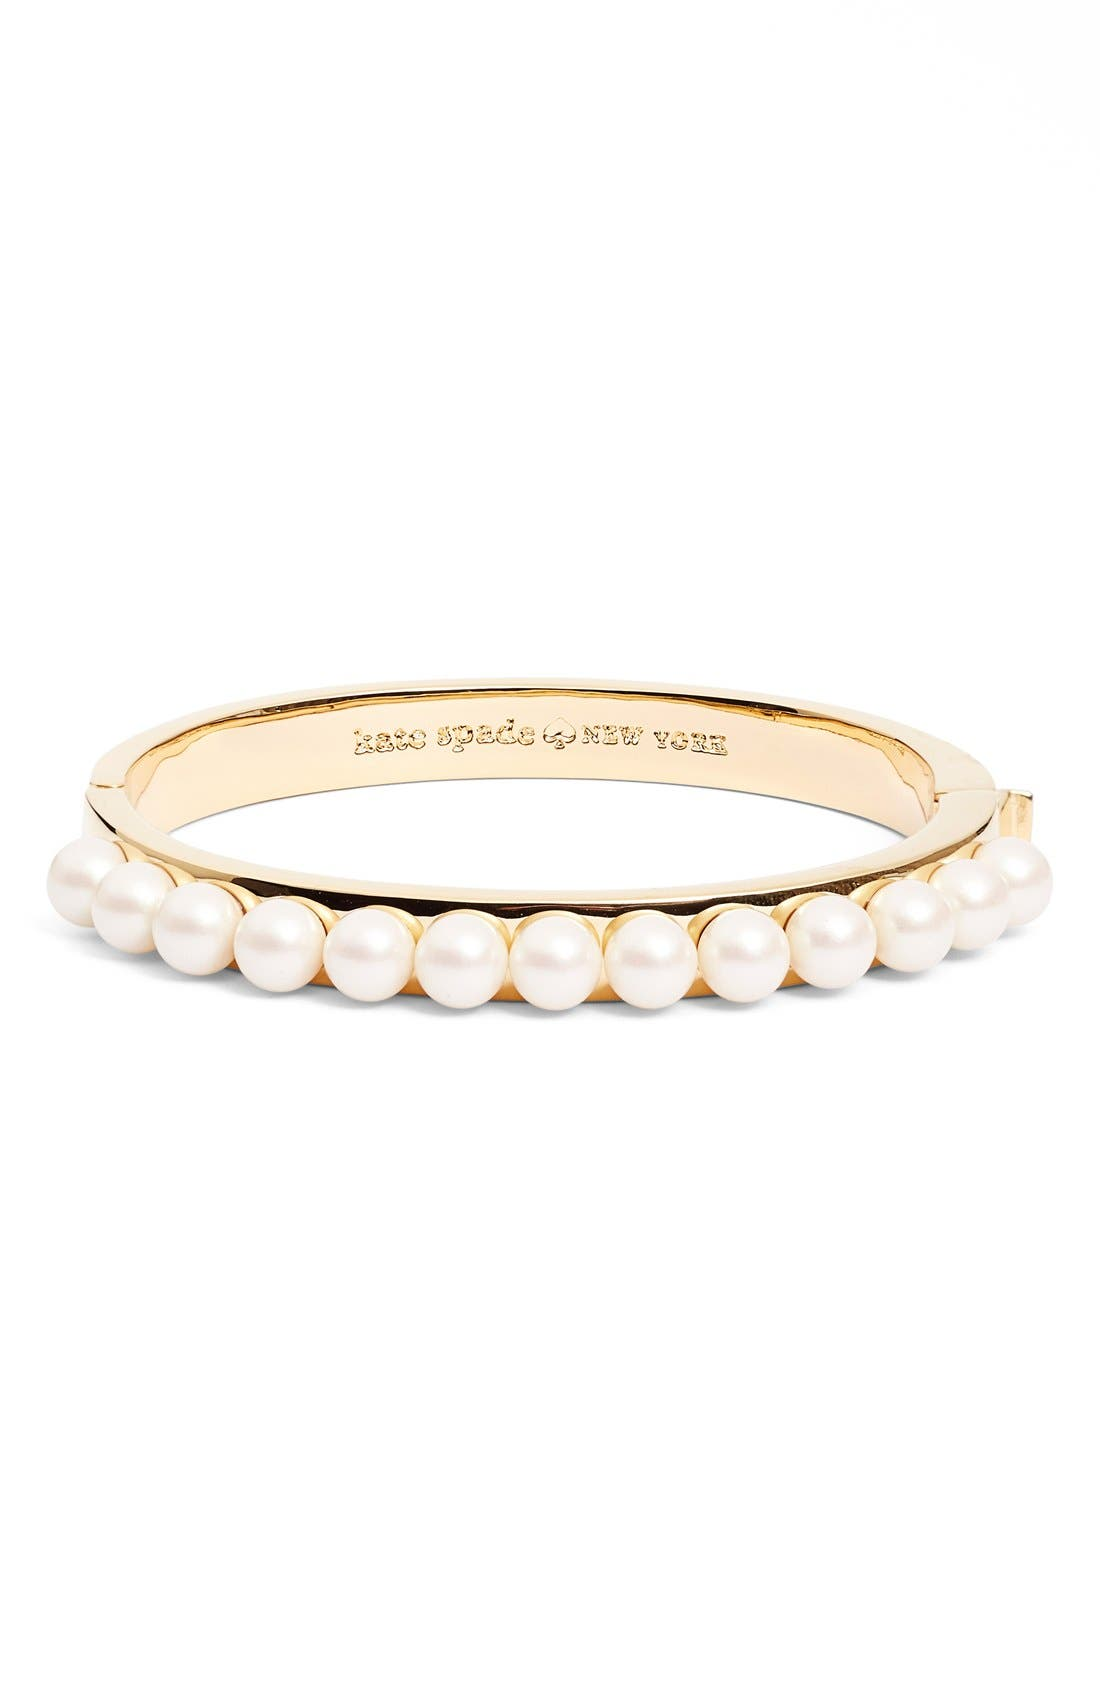 Main Image - kate spade new york 'pearly delight' bangle